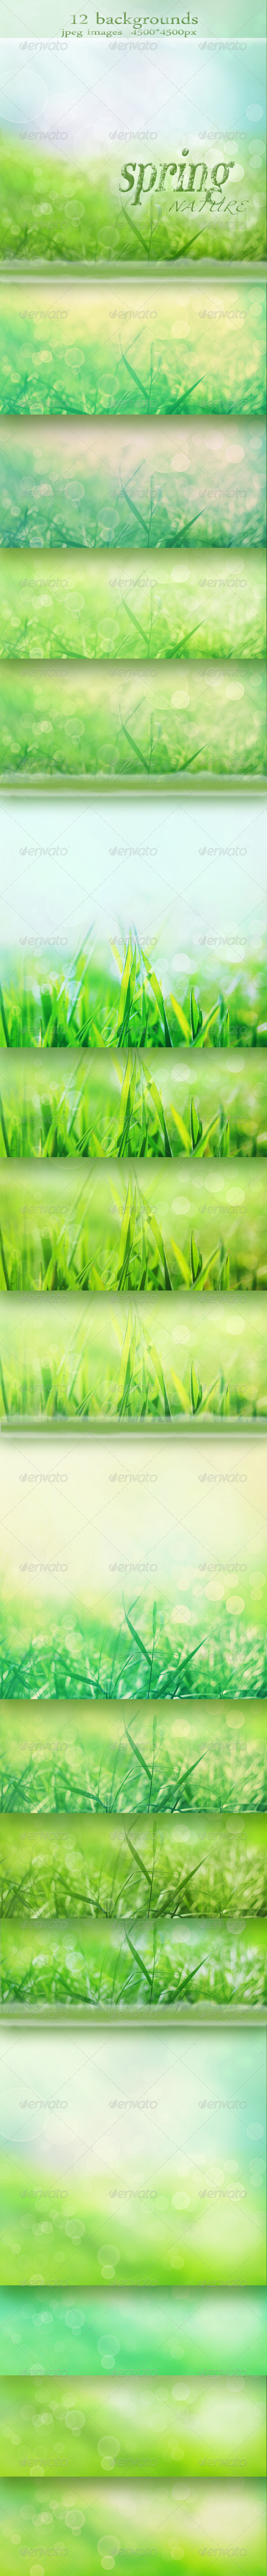 Nature Spring Backgrounds with Bokeh Effect - Nature Backgrounds